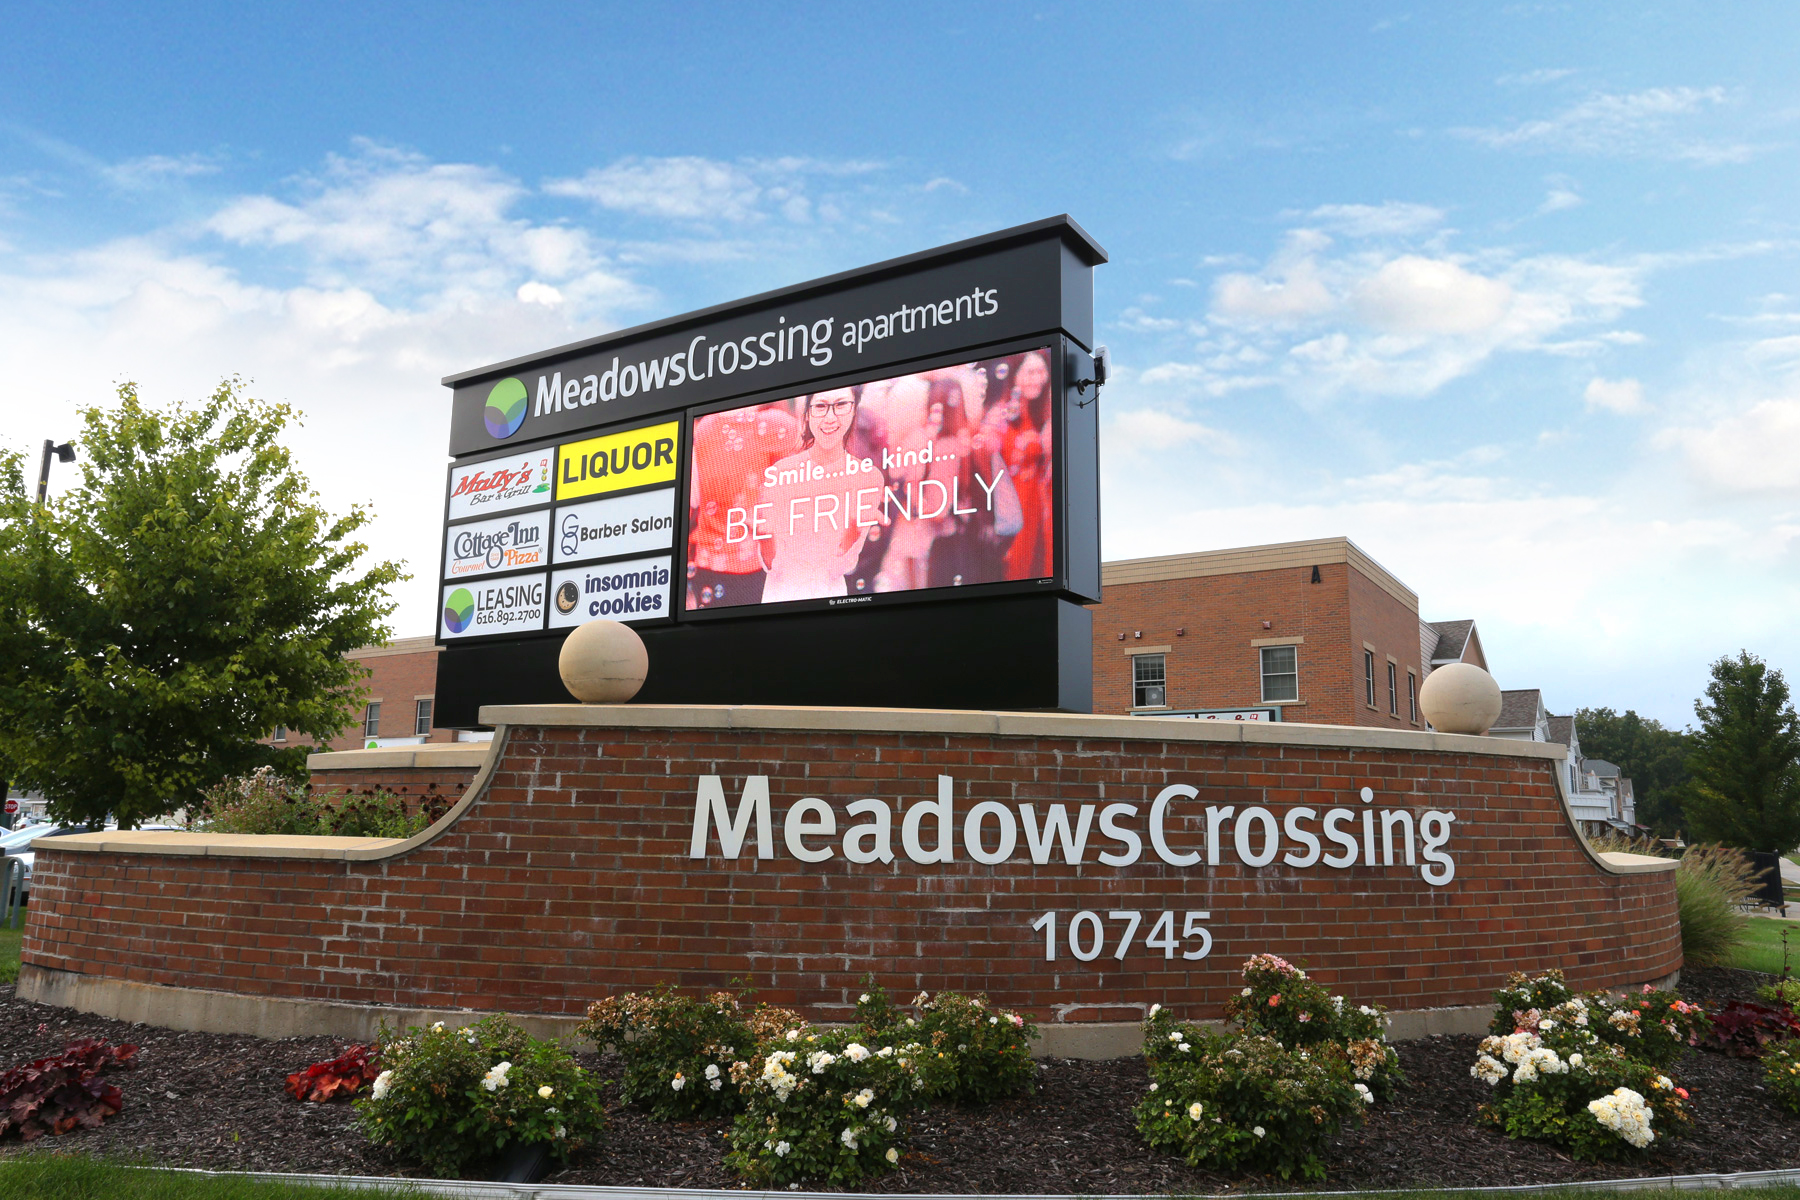 New 6mm LED Sign at Meadows Crossing Results in Higher Sales Revenue